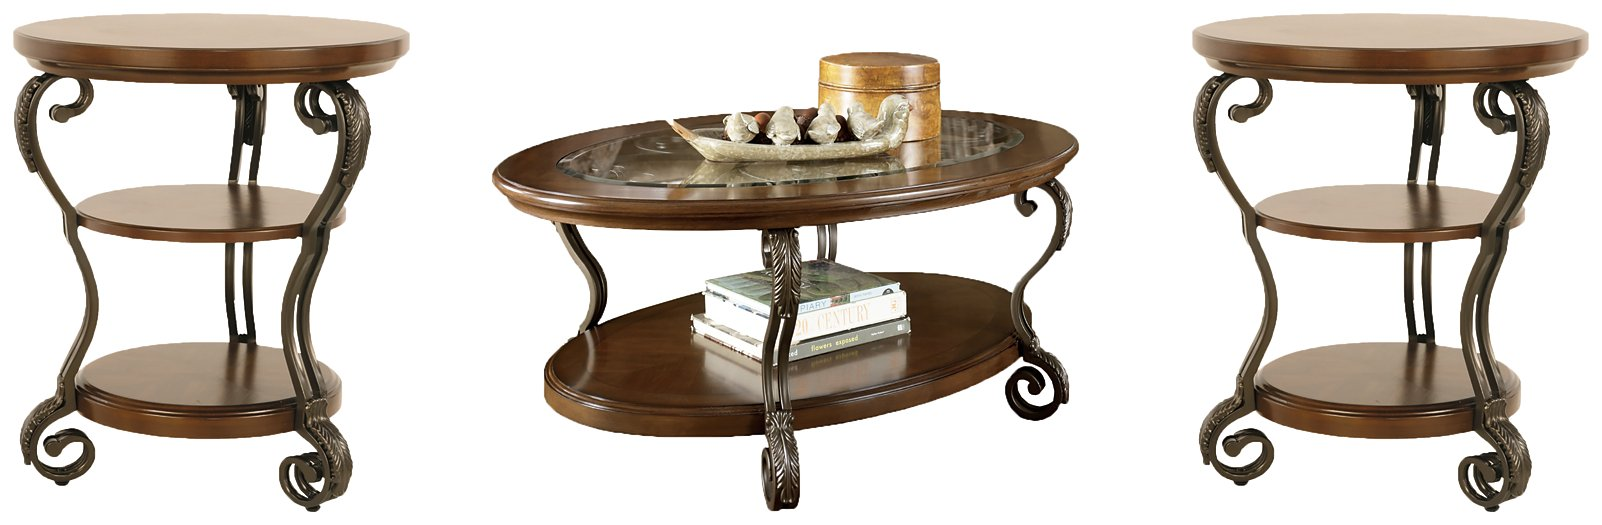 Nestor Signature Design 3-Piece Occasional Table Set image